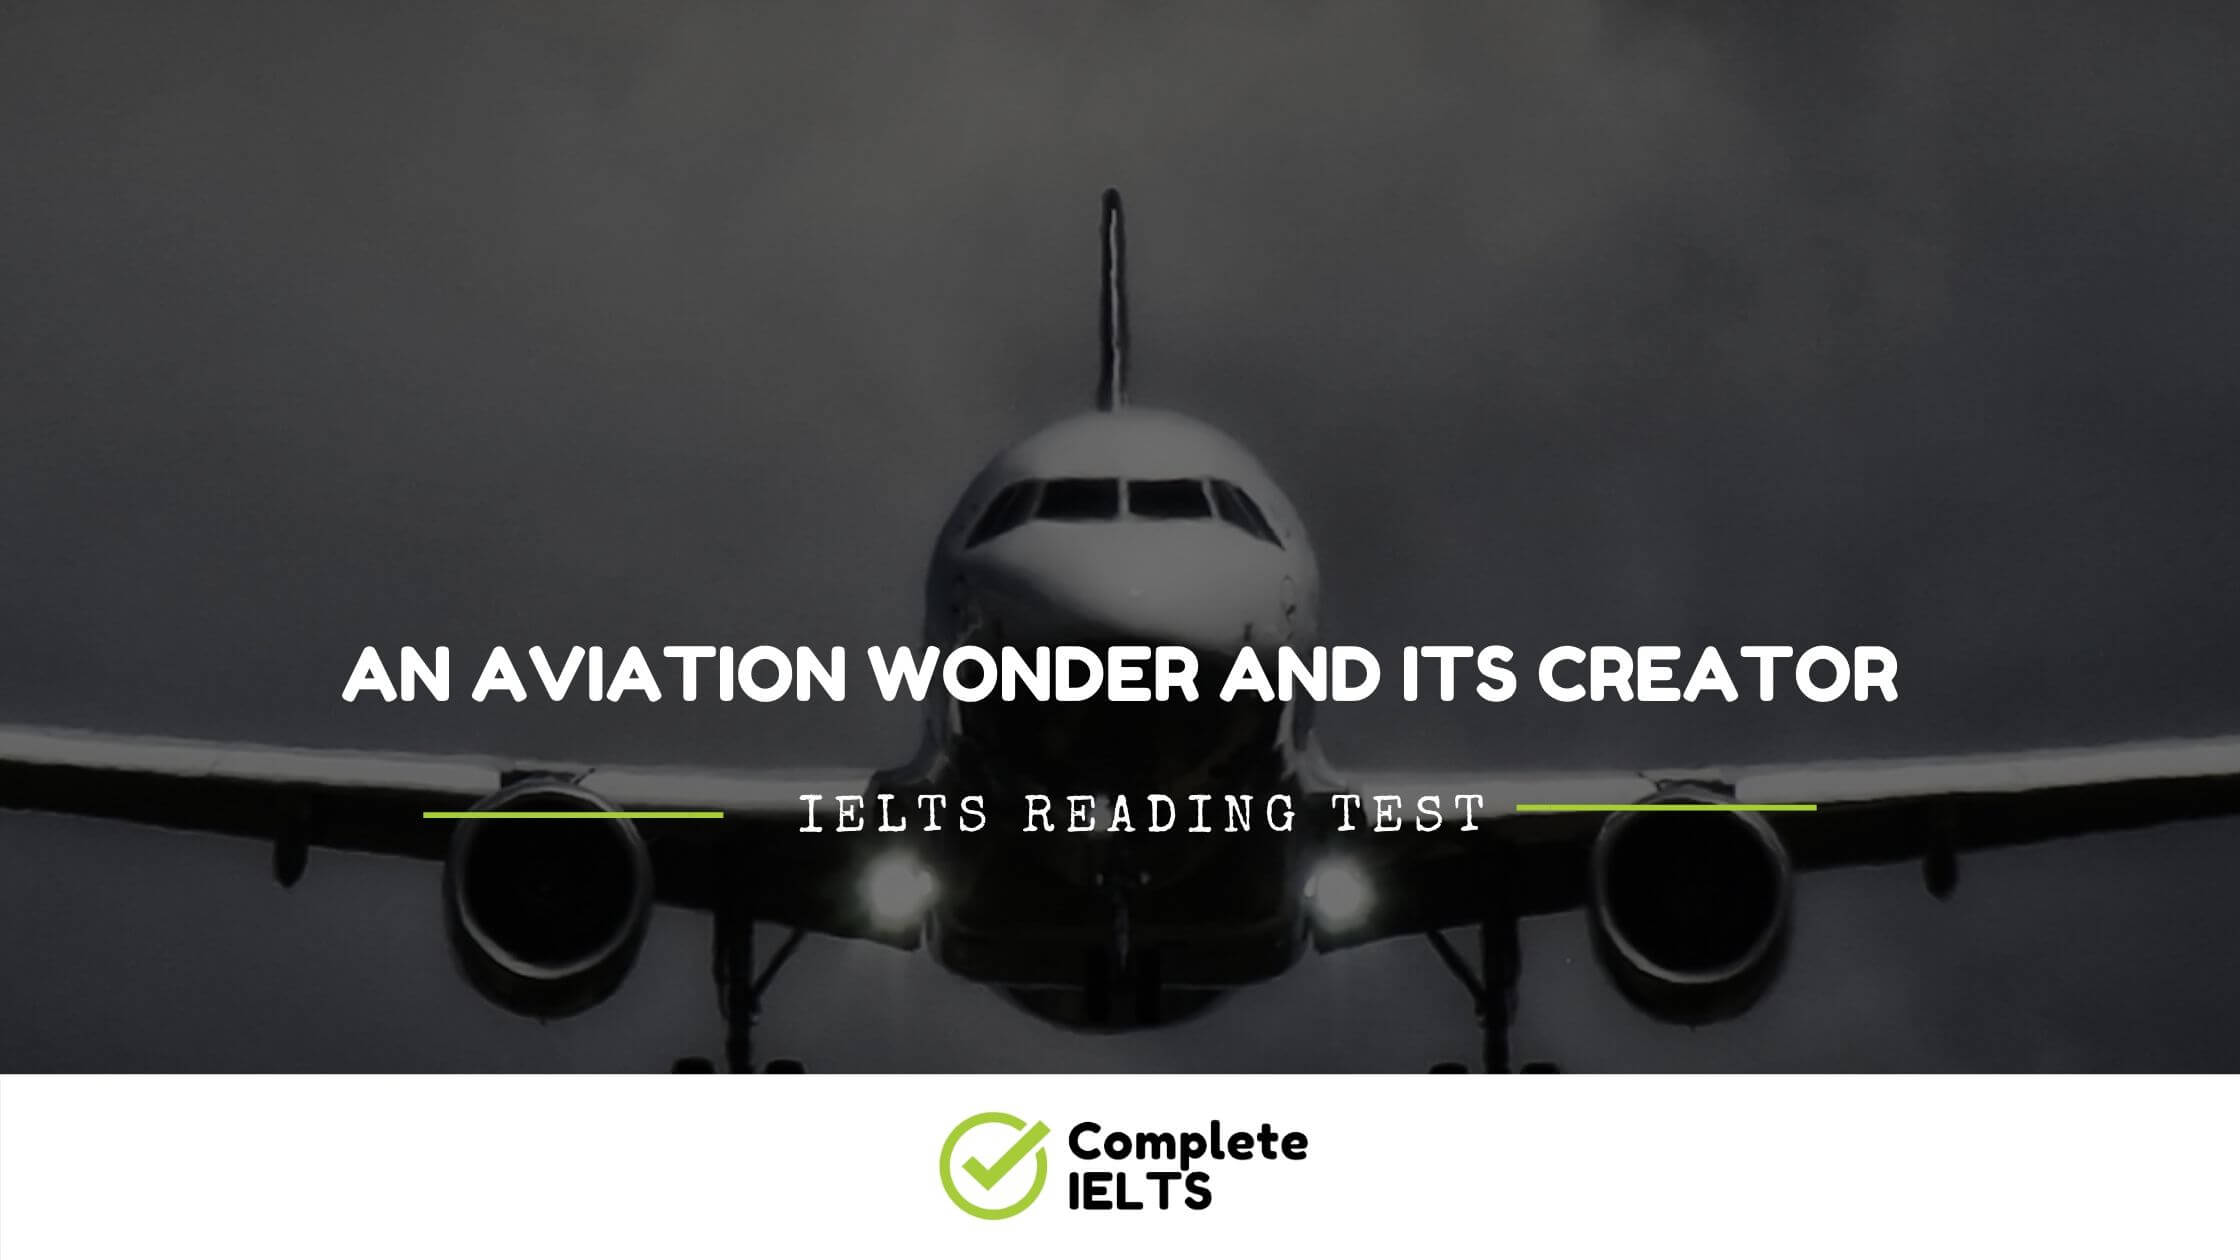 An Aviation Wonder And Its Creator